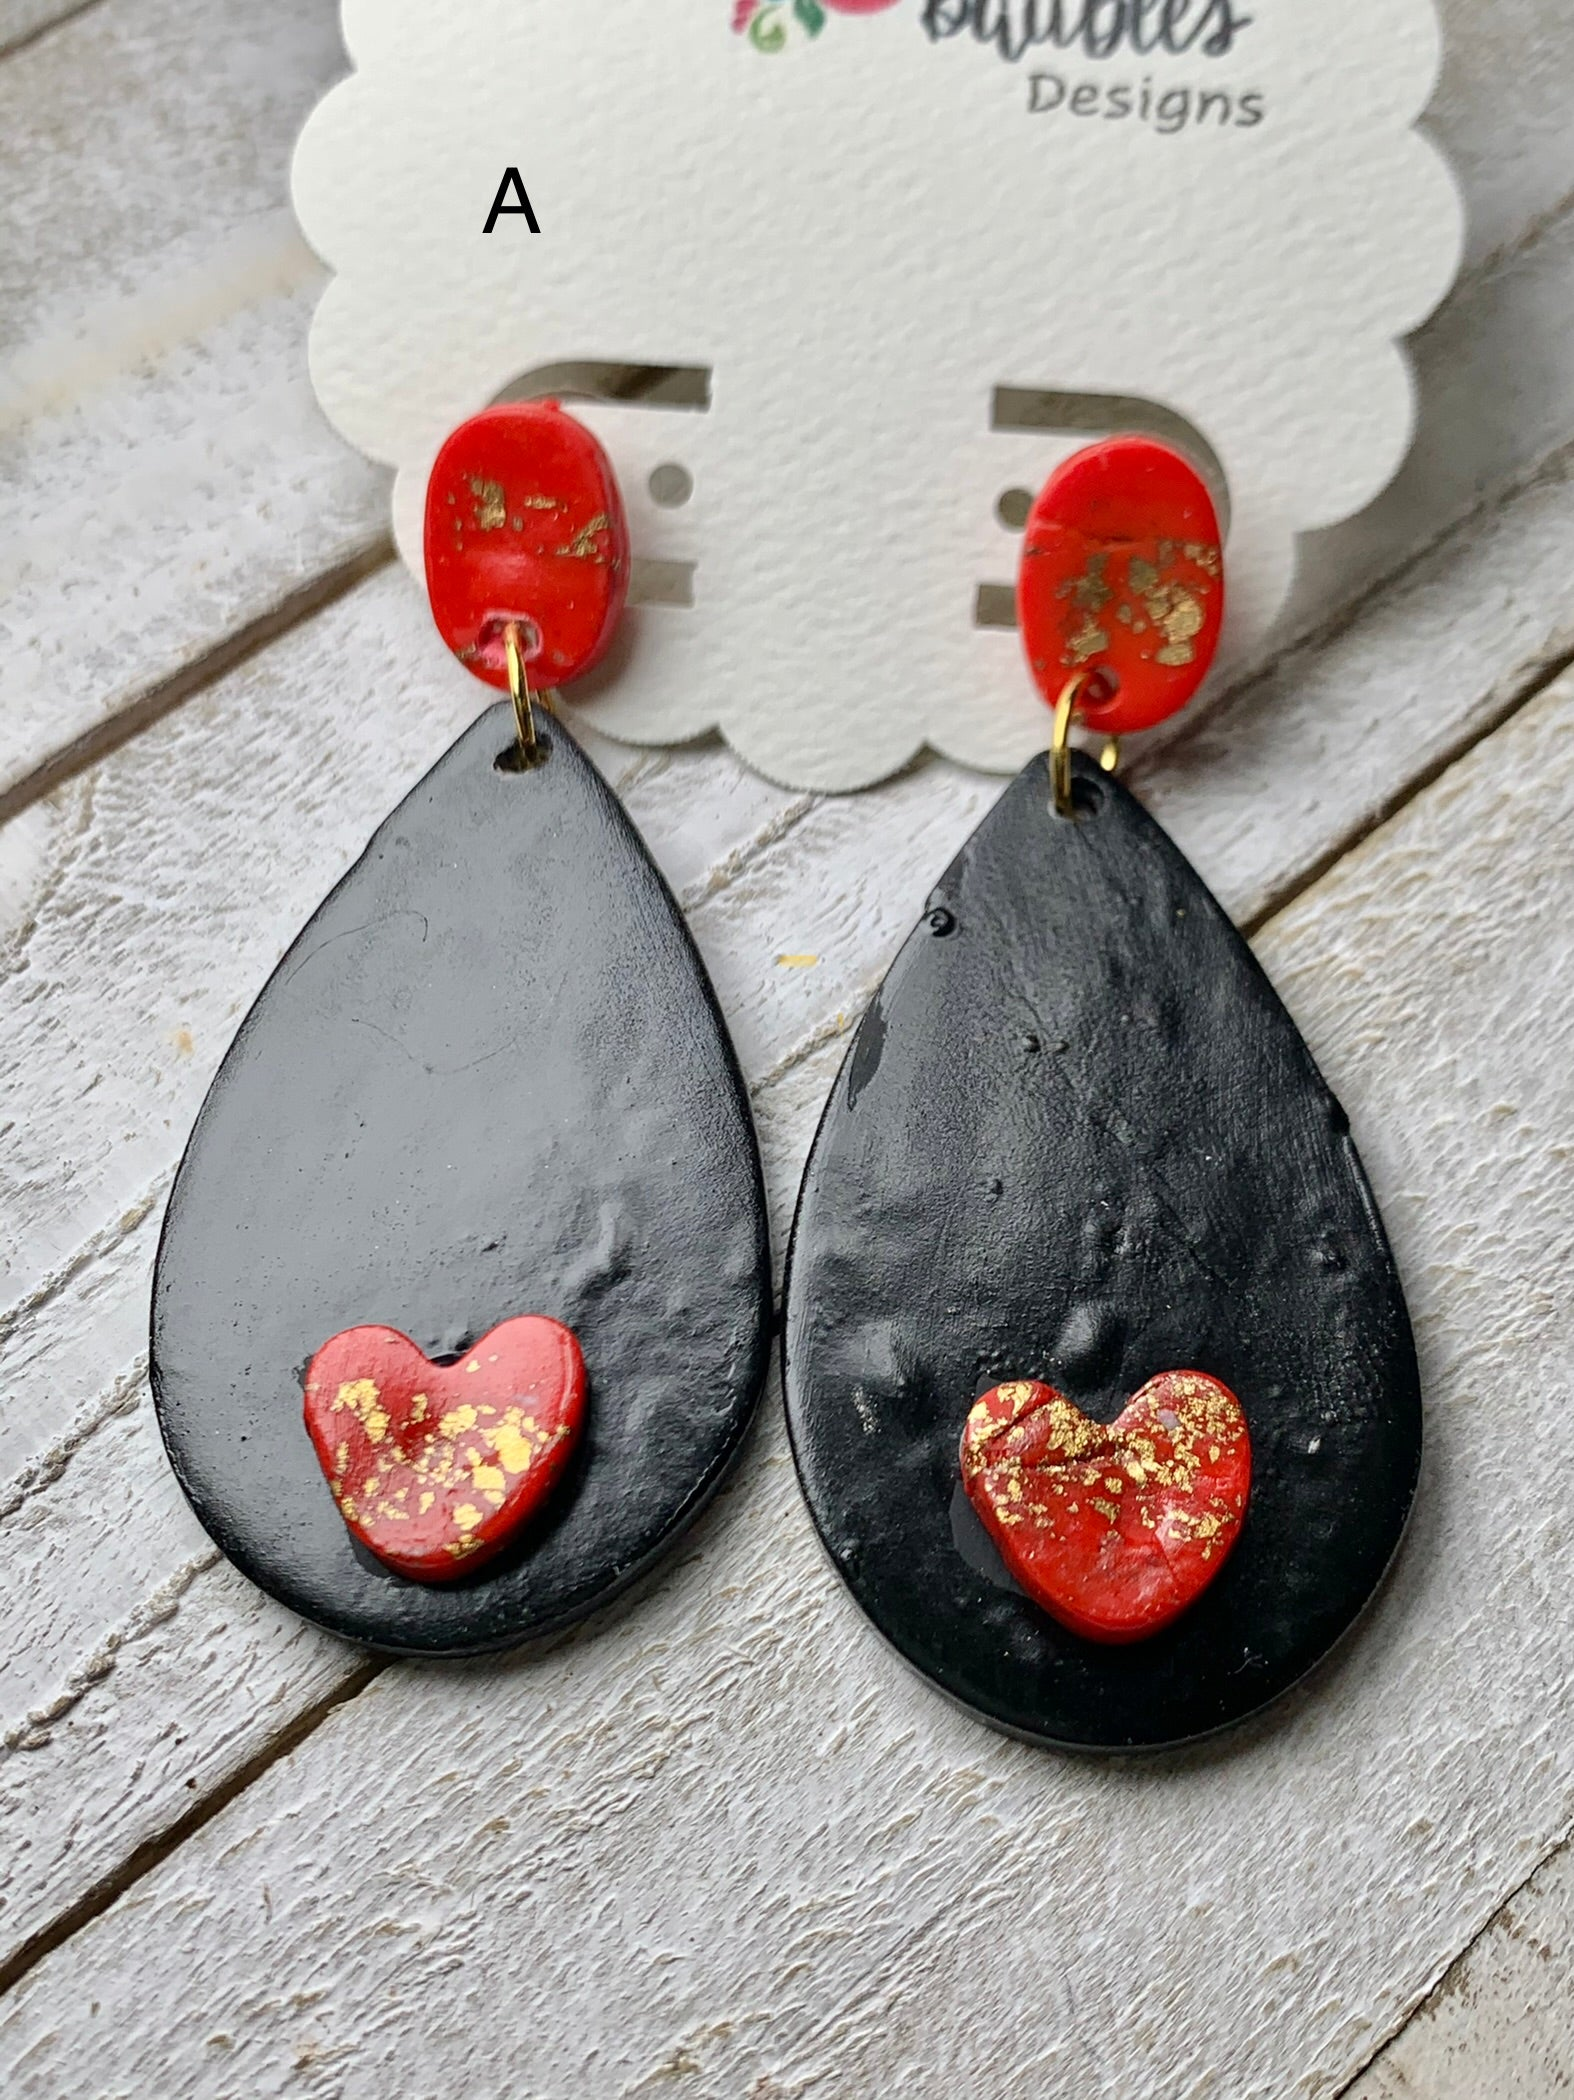 Tara Teardrop Earrings with Heart